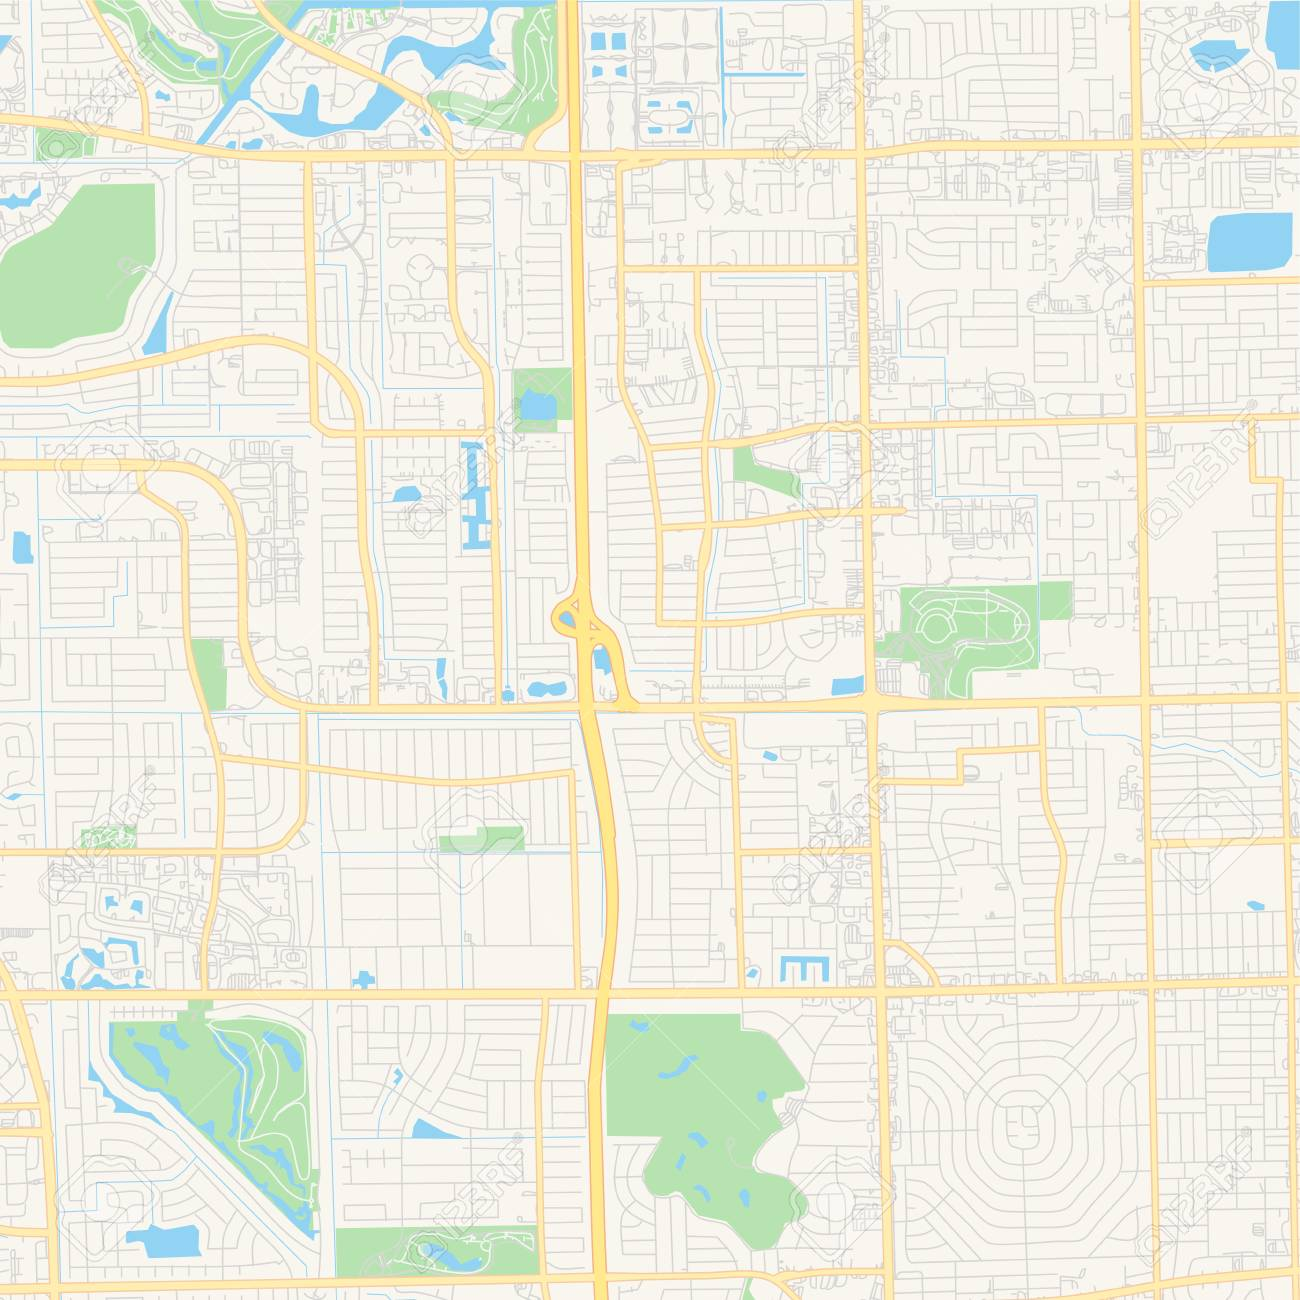 photo about Printable Florida Map called Vacant vector map of Lauderhill, Florida, United states, printable street..